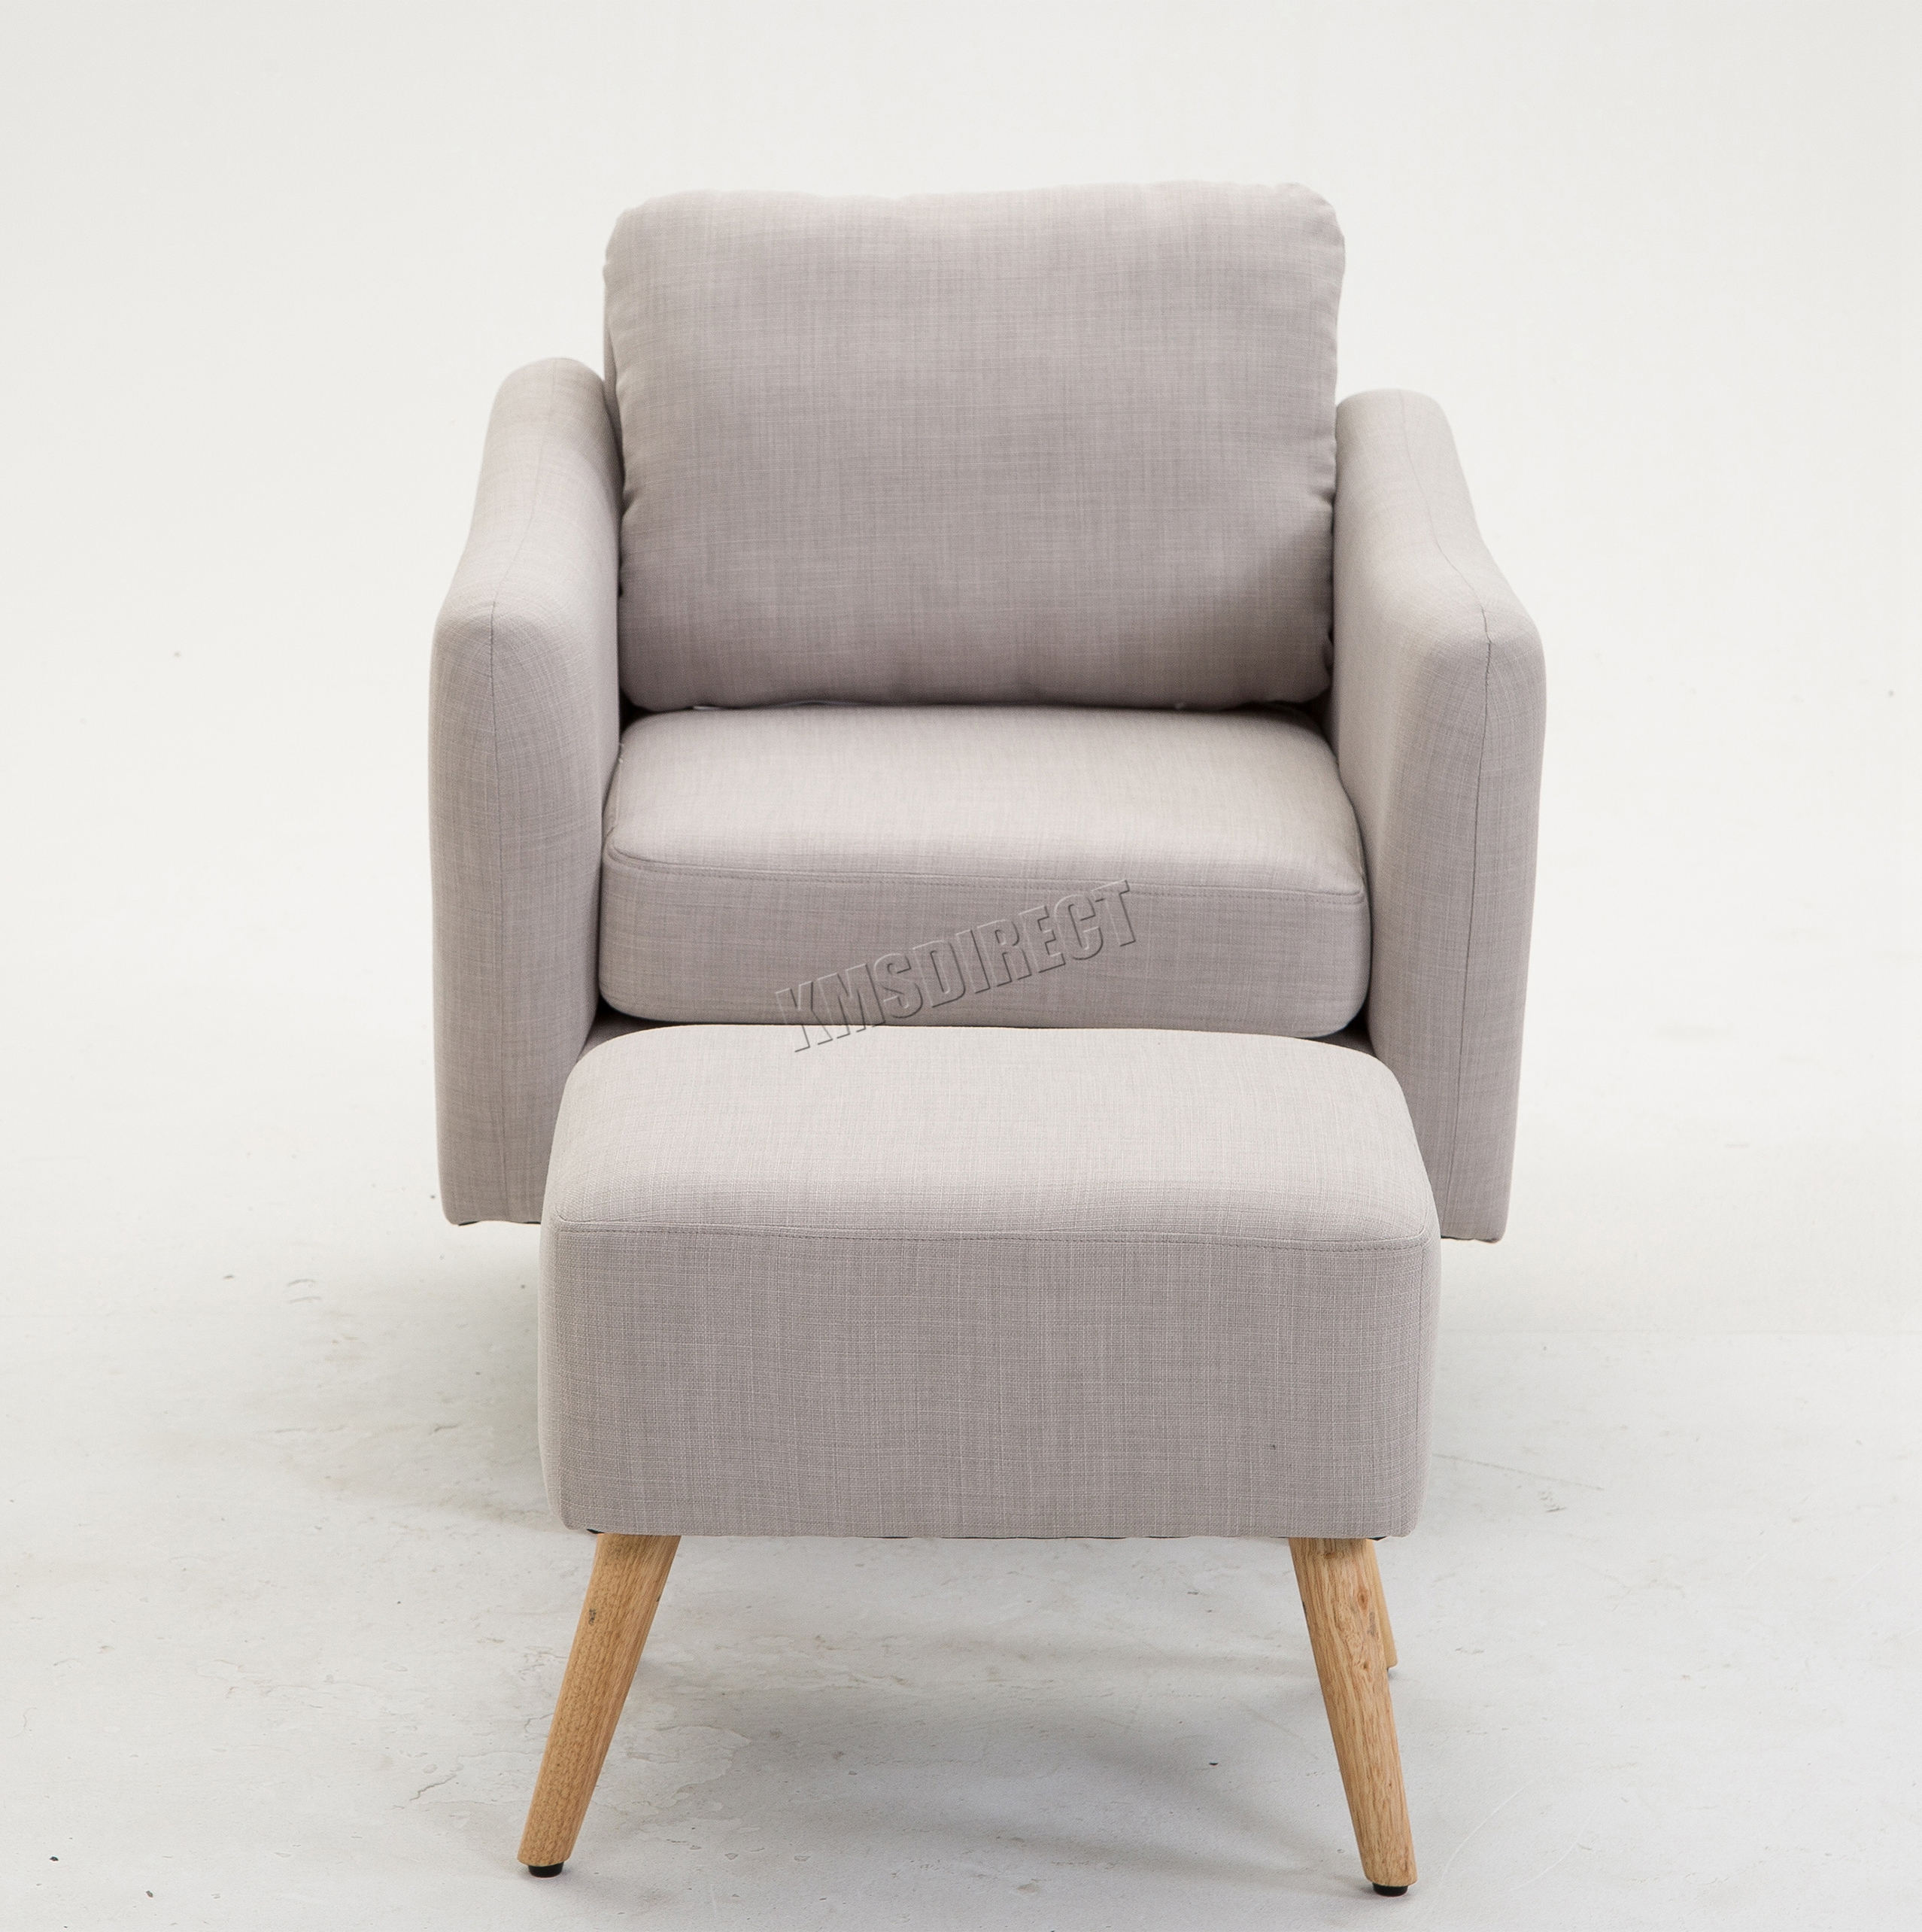 chair stool sofa dining room host chairs foxhunter fabric armchair lounge tub with foot